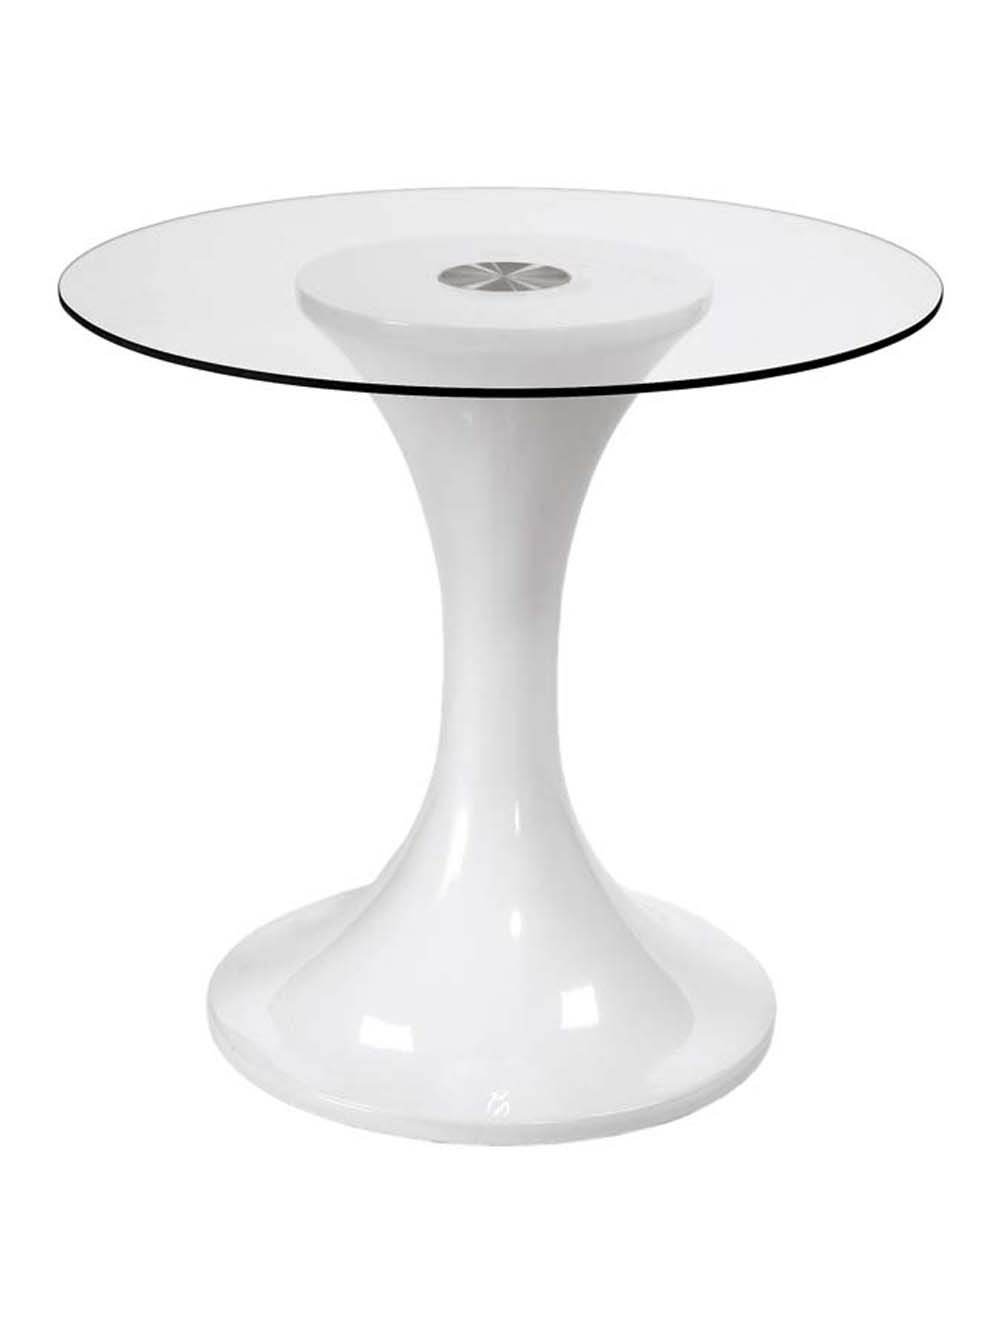 White johnie glass dining table white base